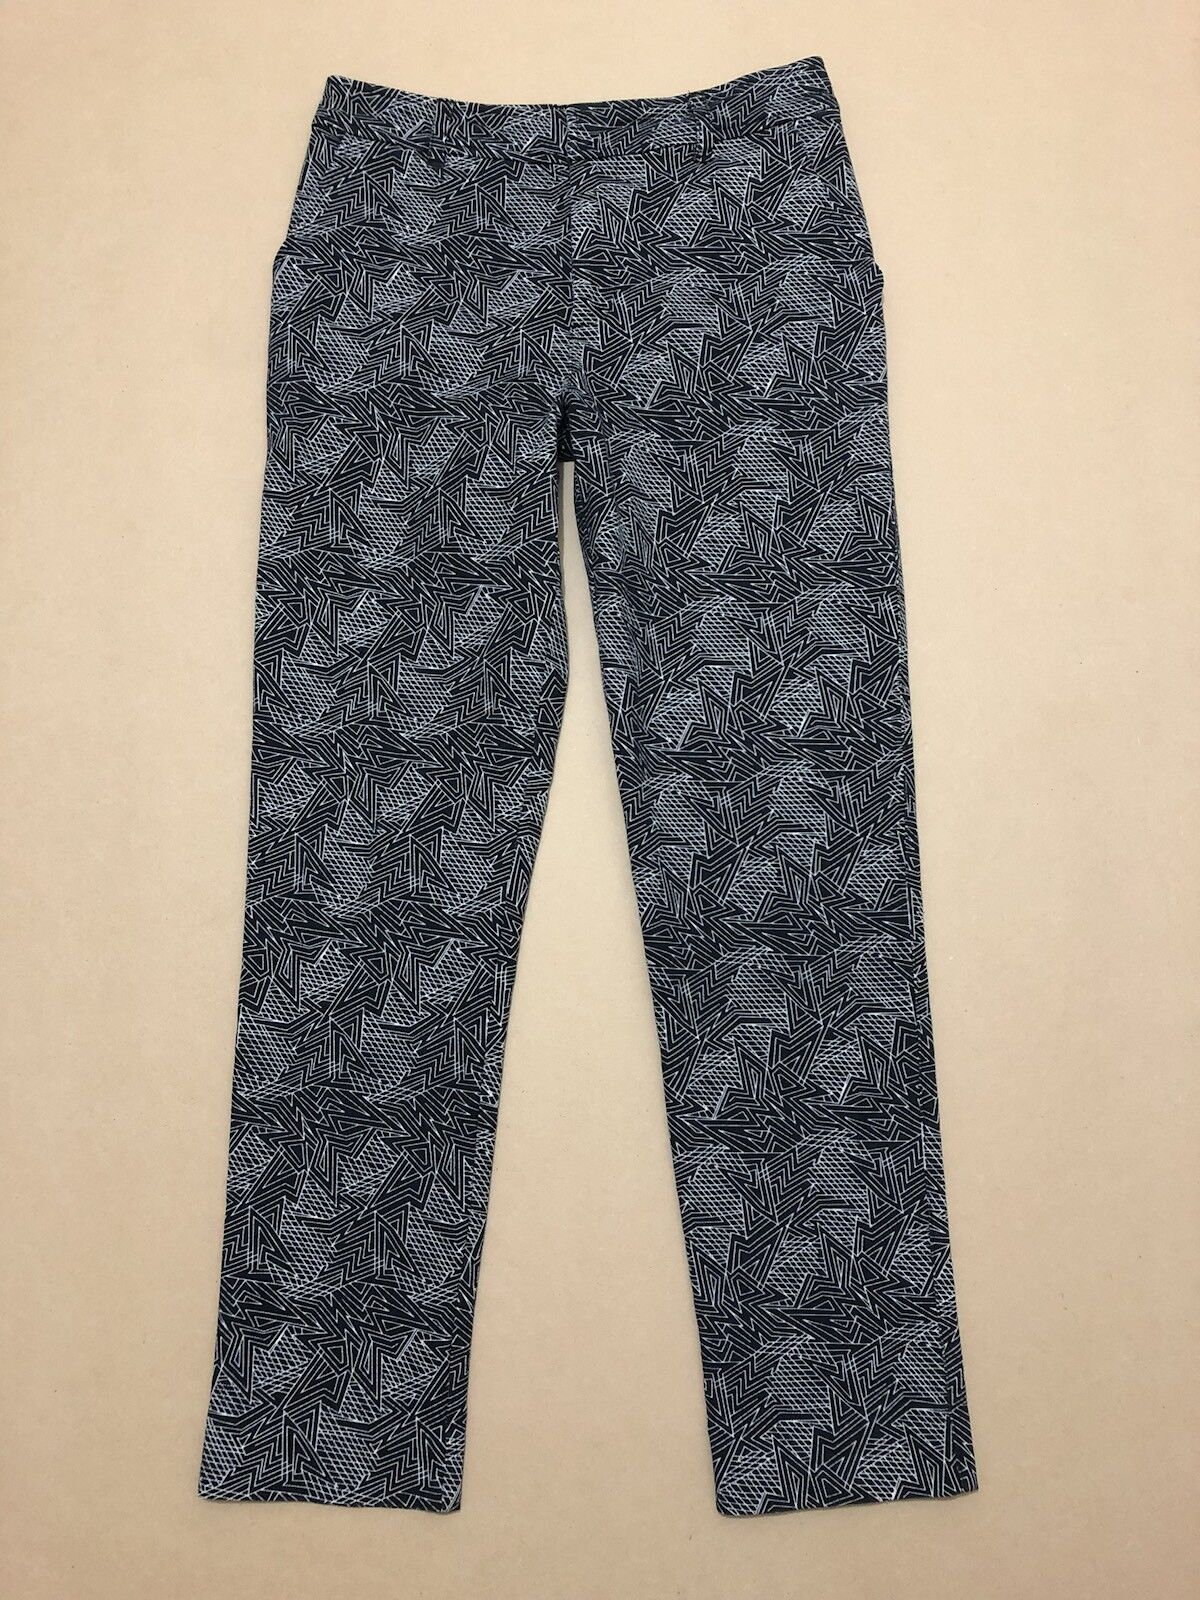 GORhomme PANTS femmes  Taille 8  GREAT COND W  GEOMETRIC PRINTED DESIGN TROUSERS